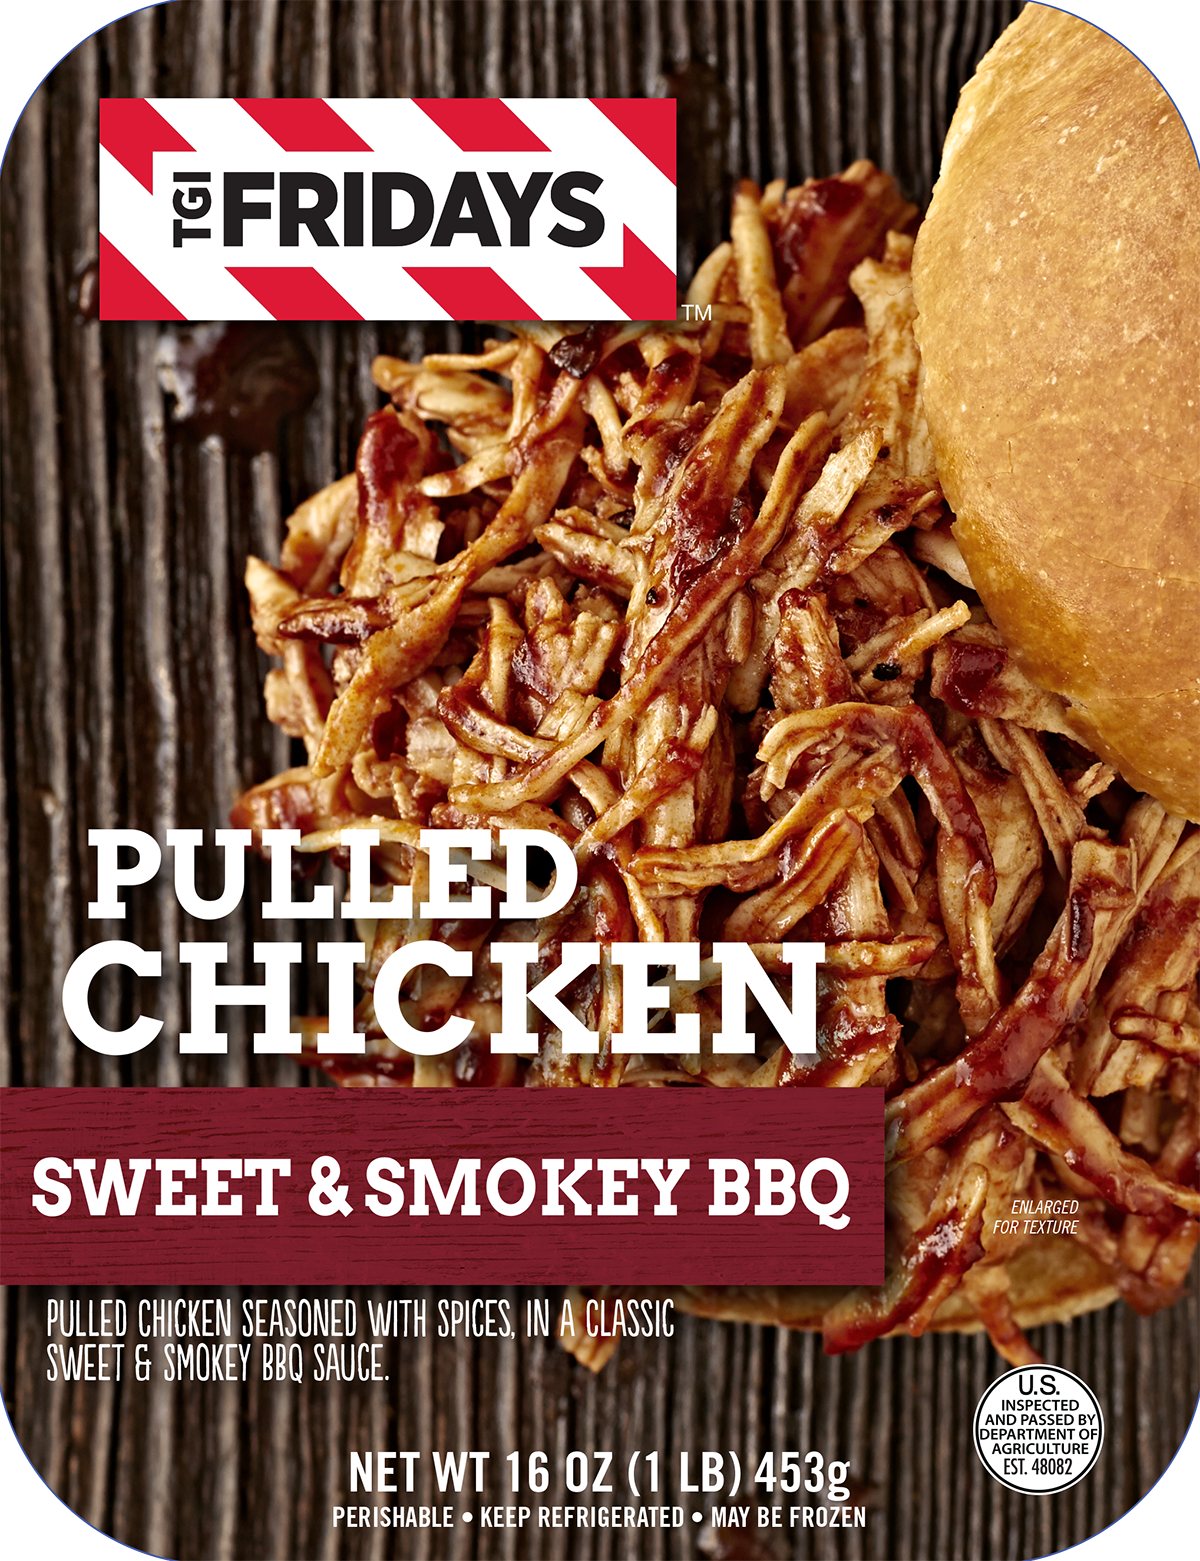 TGIF PULLED CHICKEN BBQ SEAS.png